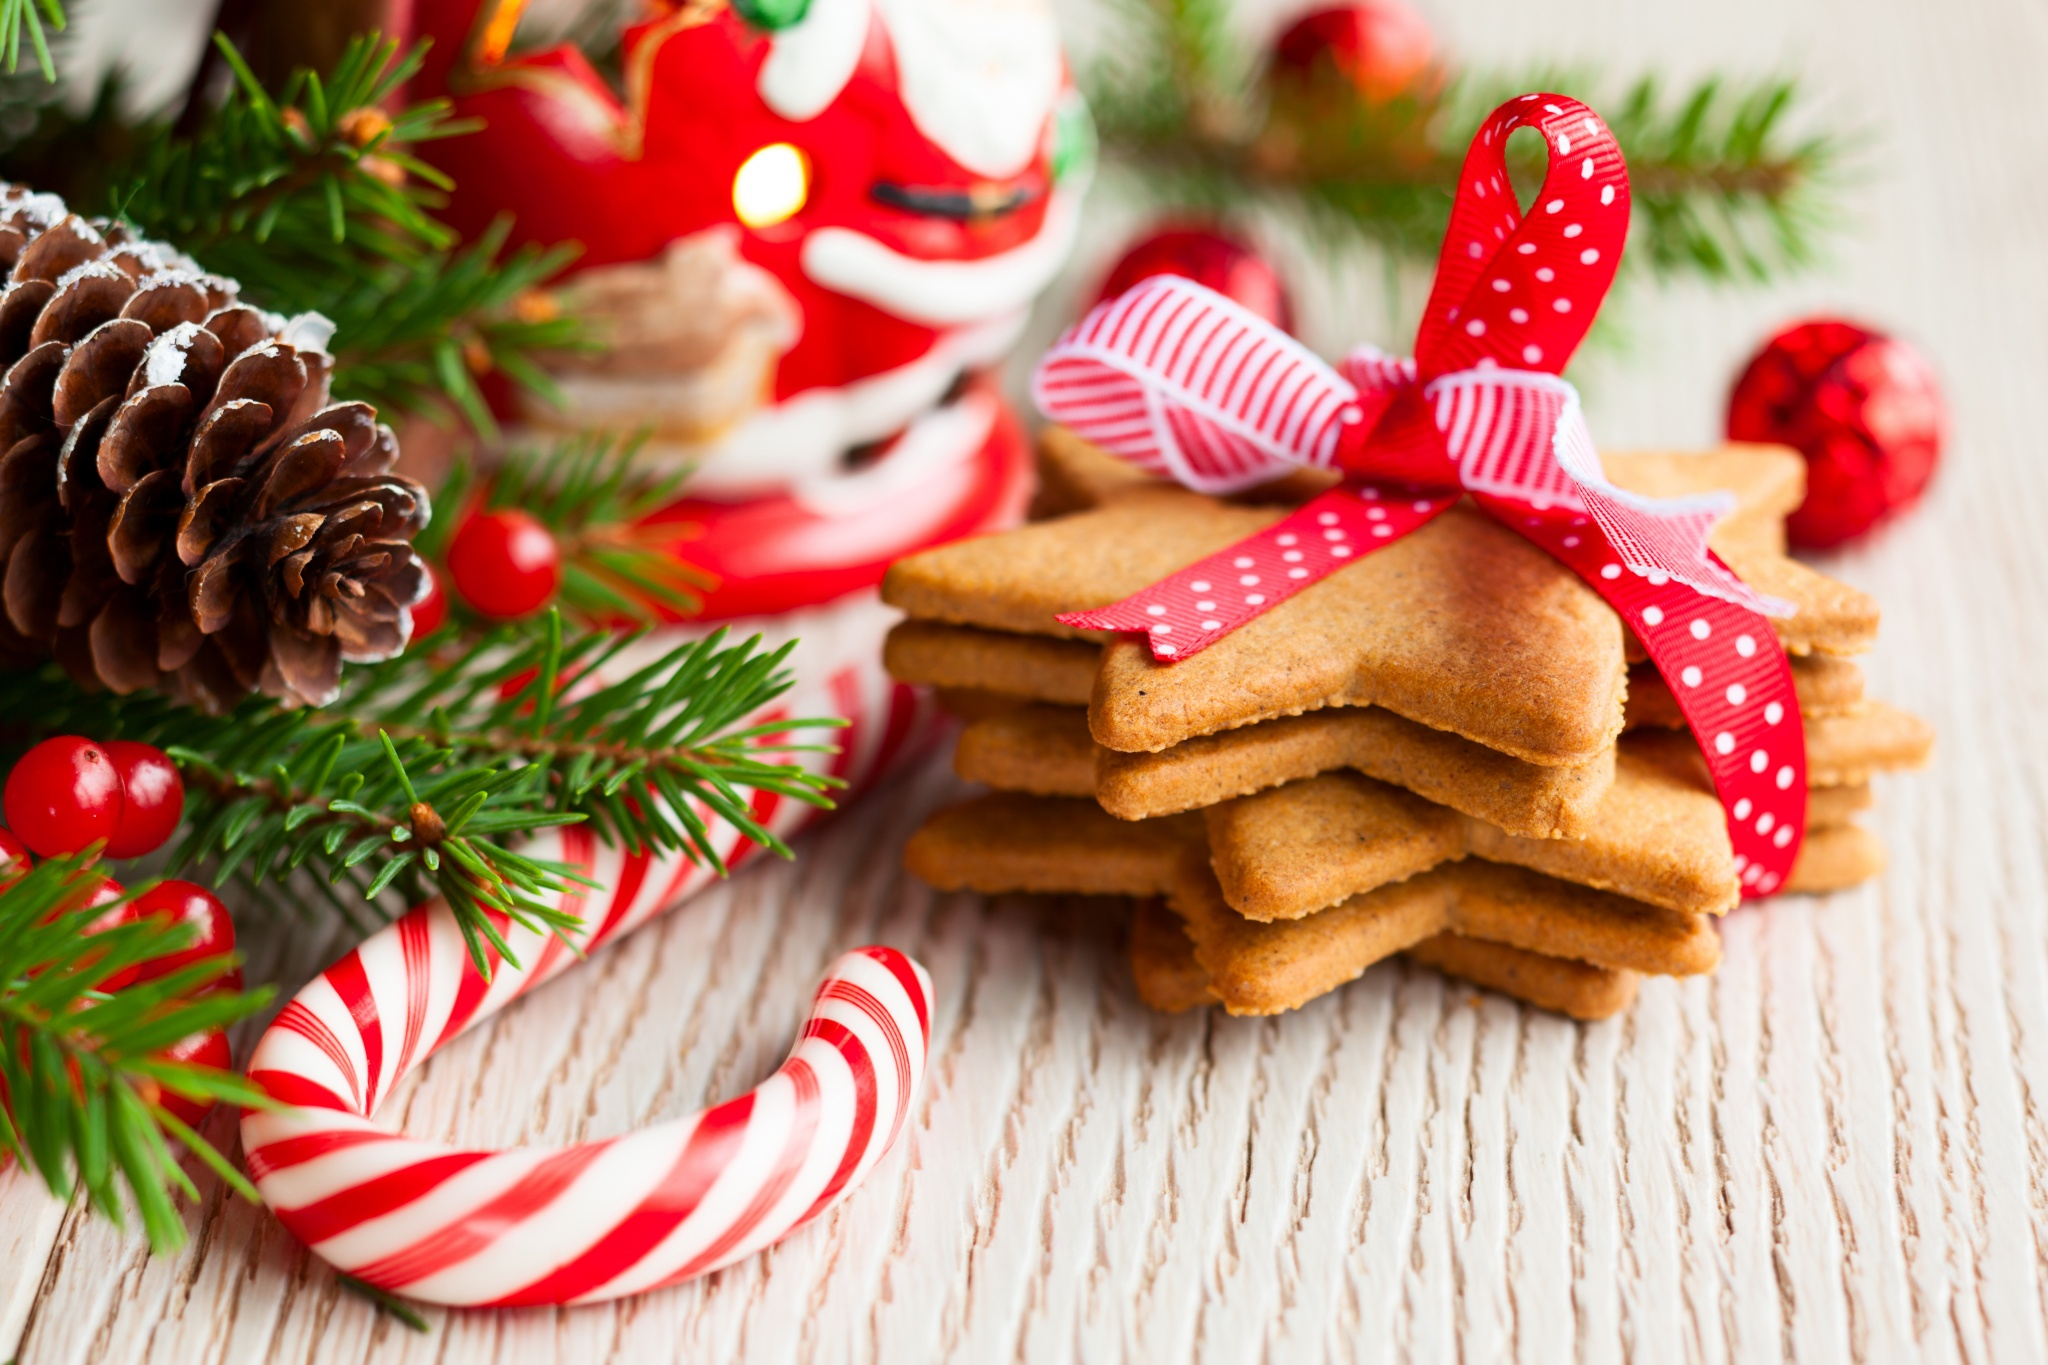 New_Year_wallpapers_Cookies_for_the_New_Year_2015_088621_.jpg